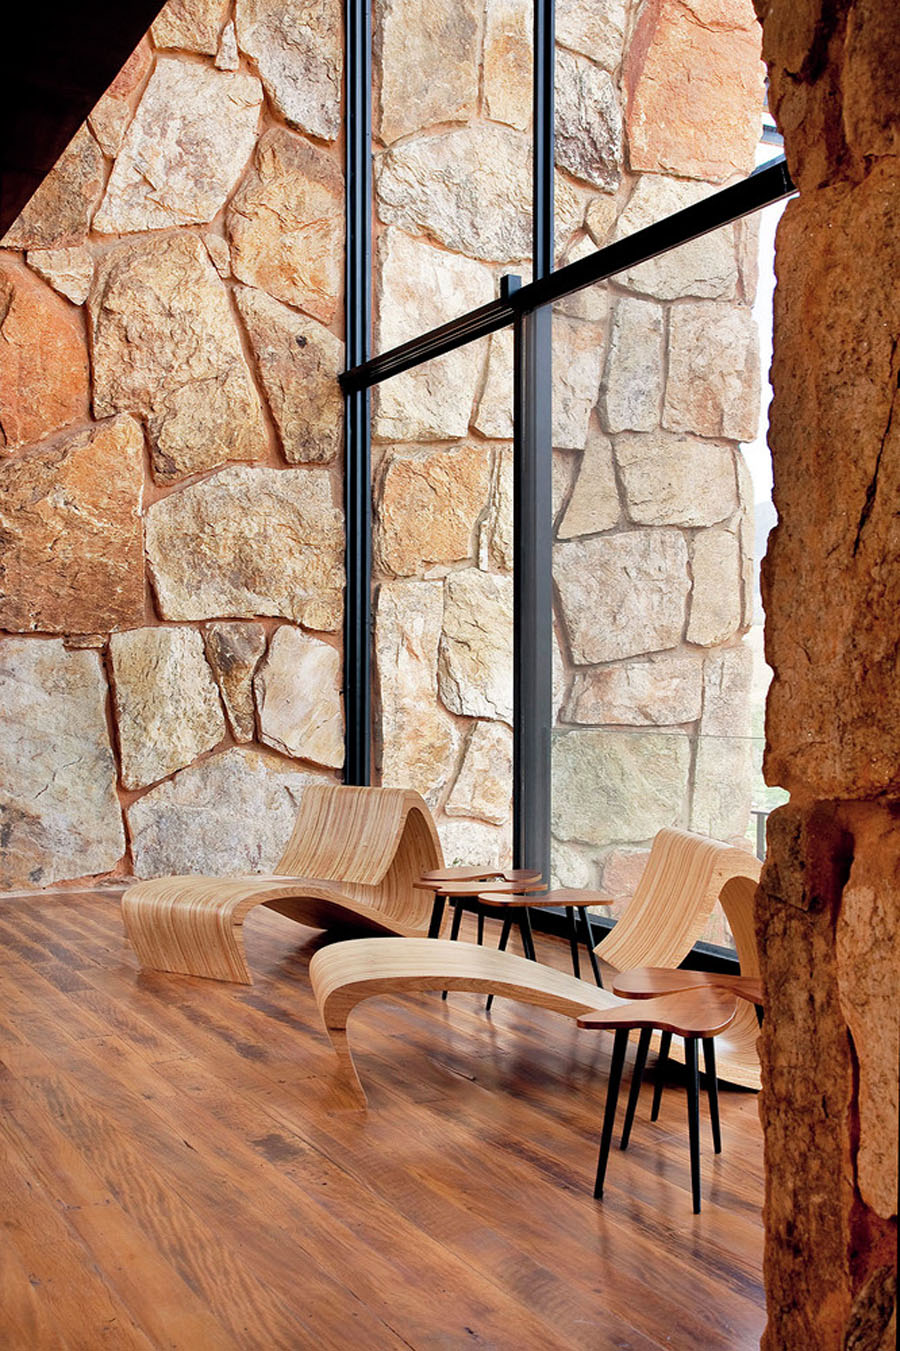 L_IMG_5076_Tuca_Reines_R_archdaily_copy